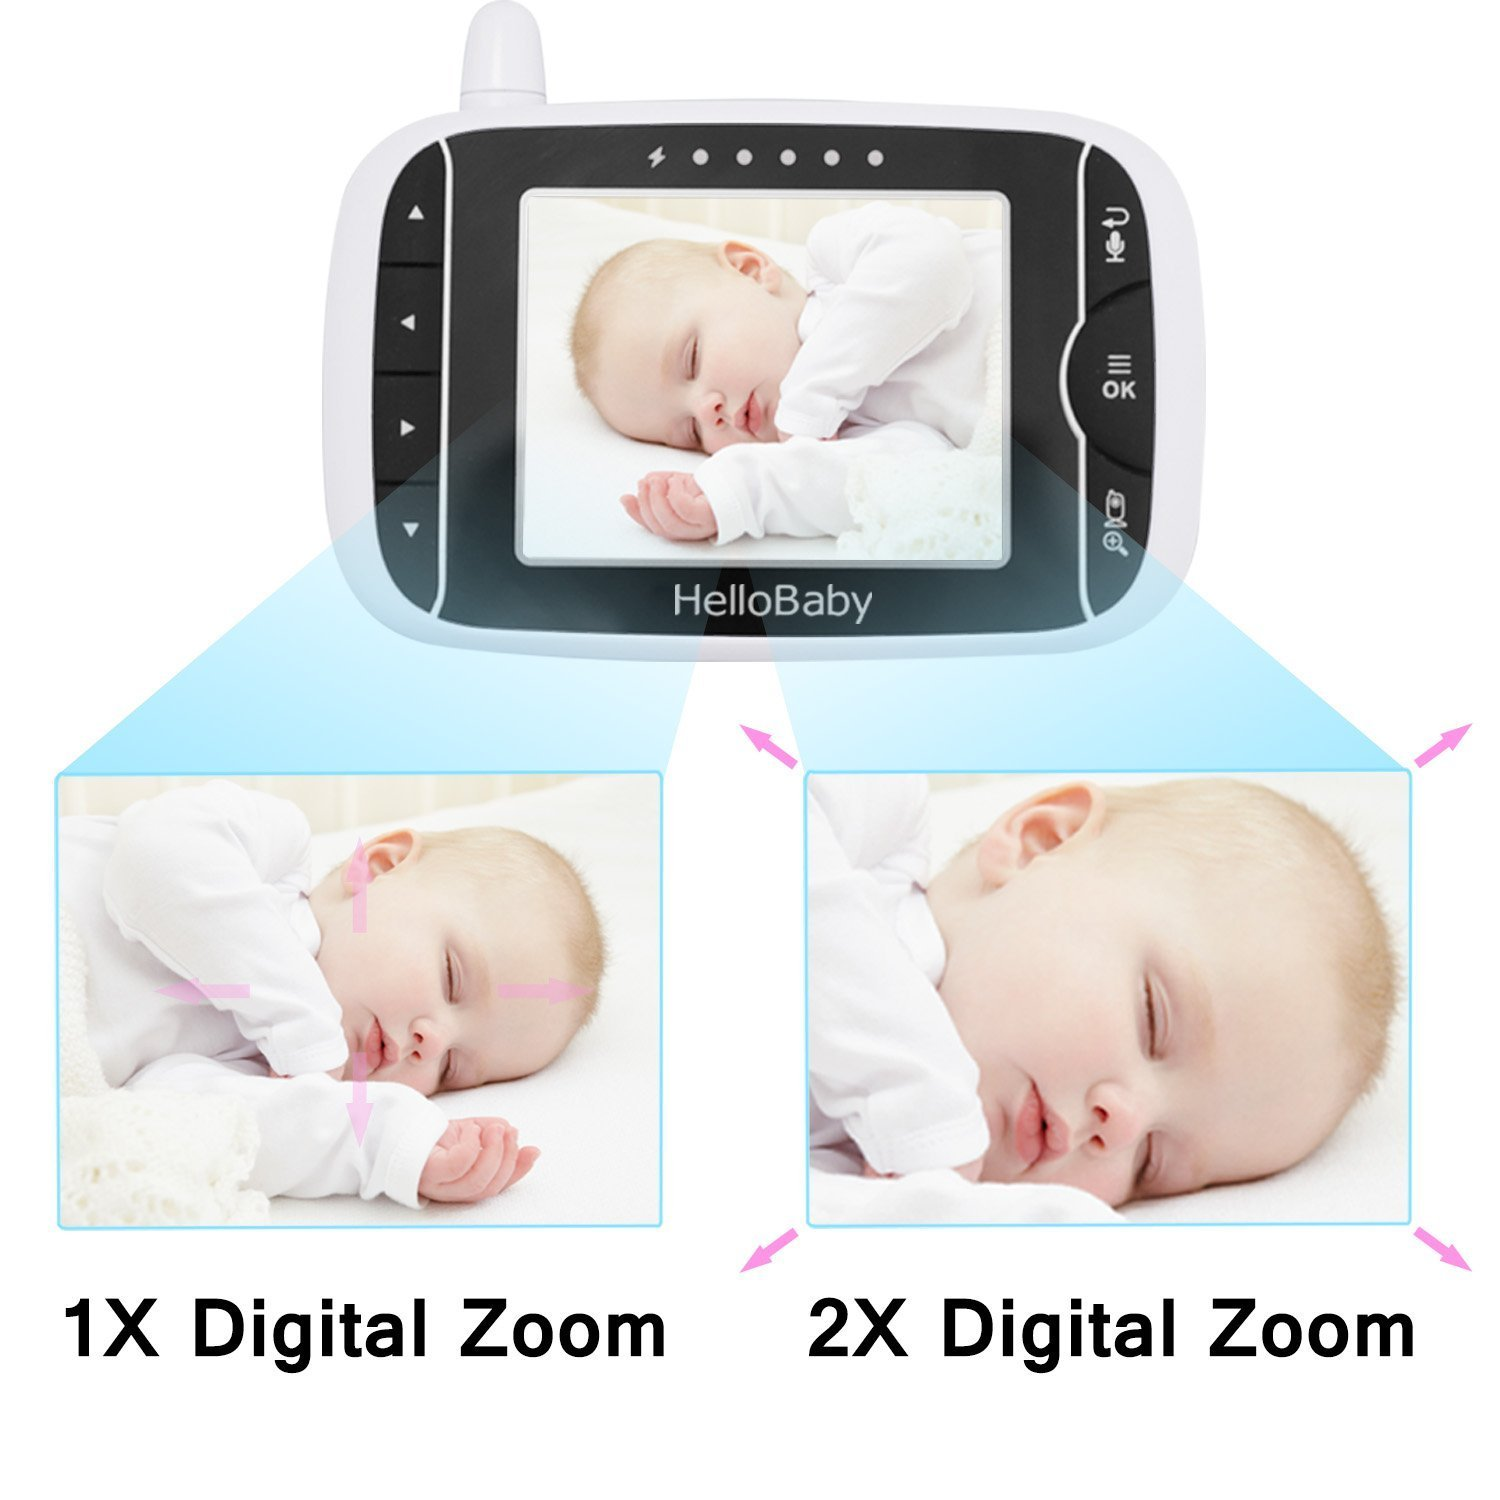 HelloBaby HB32 Baby Monitor Parent Unit